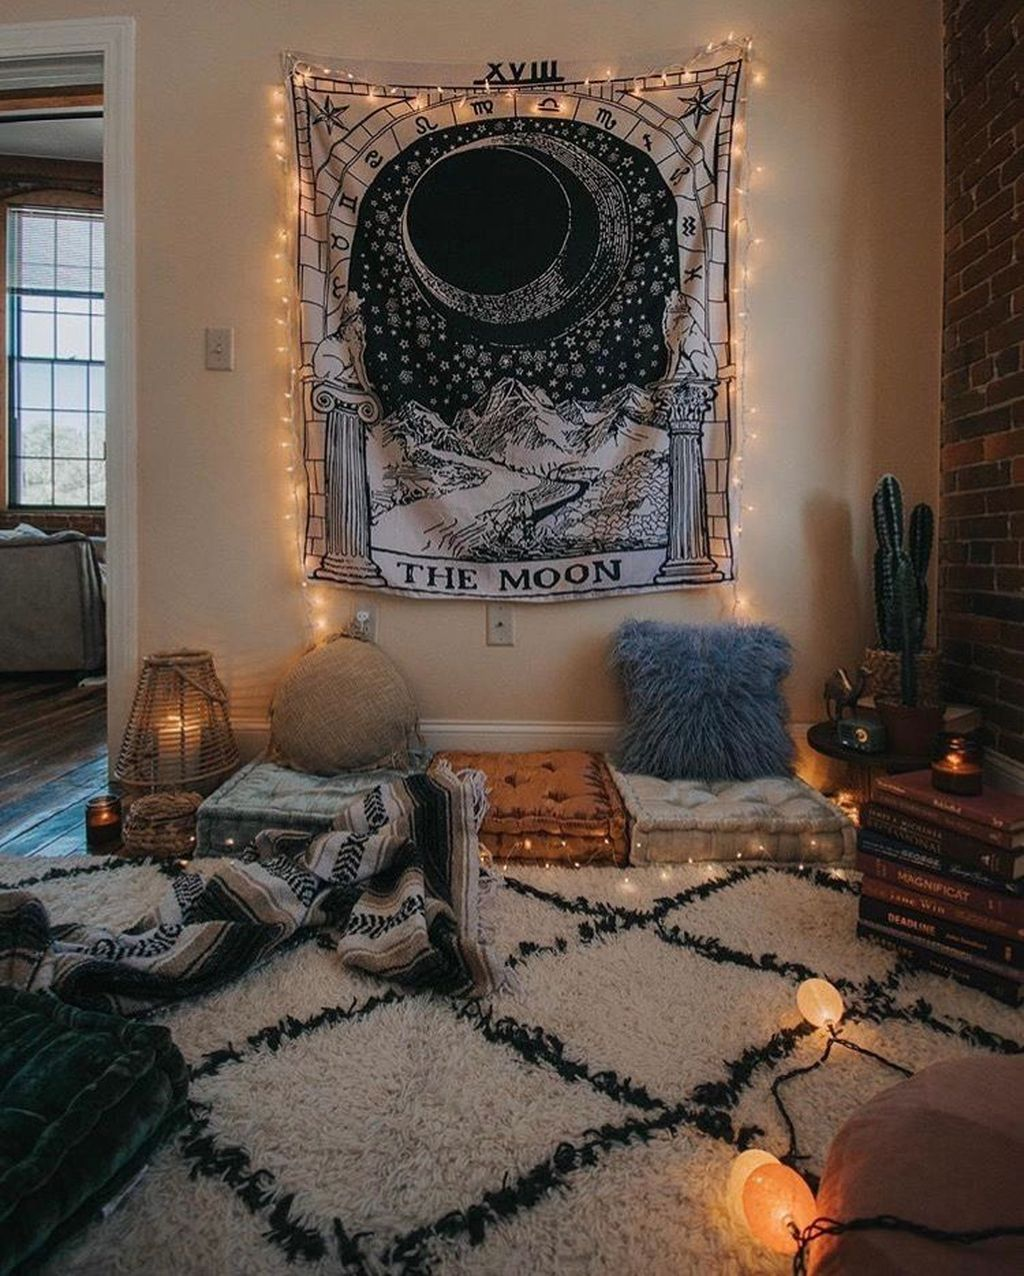 Stunning Hippie Room Decor Ideas You Never Seen Before 23